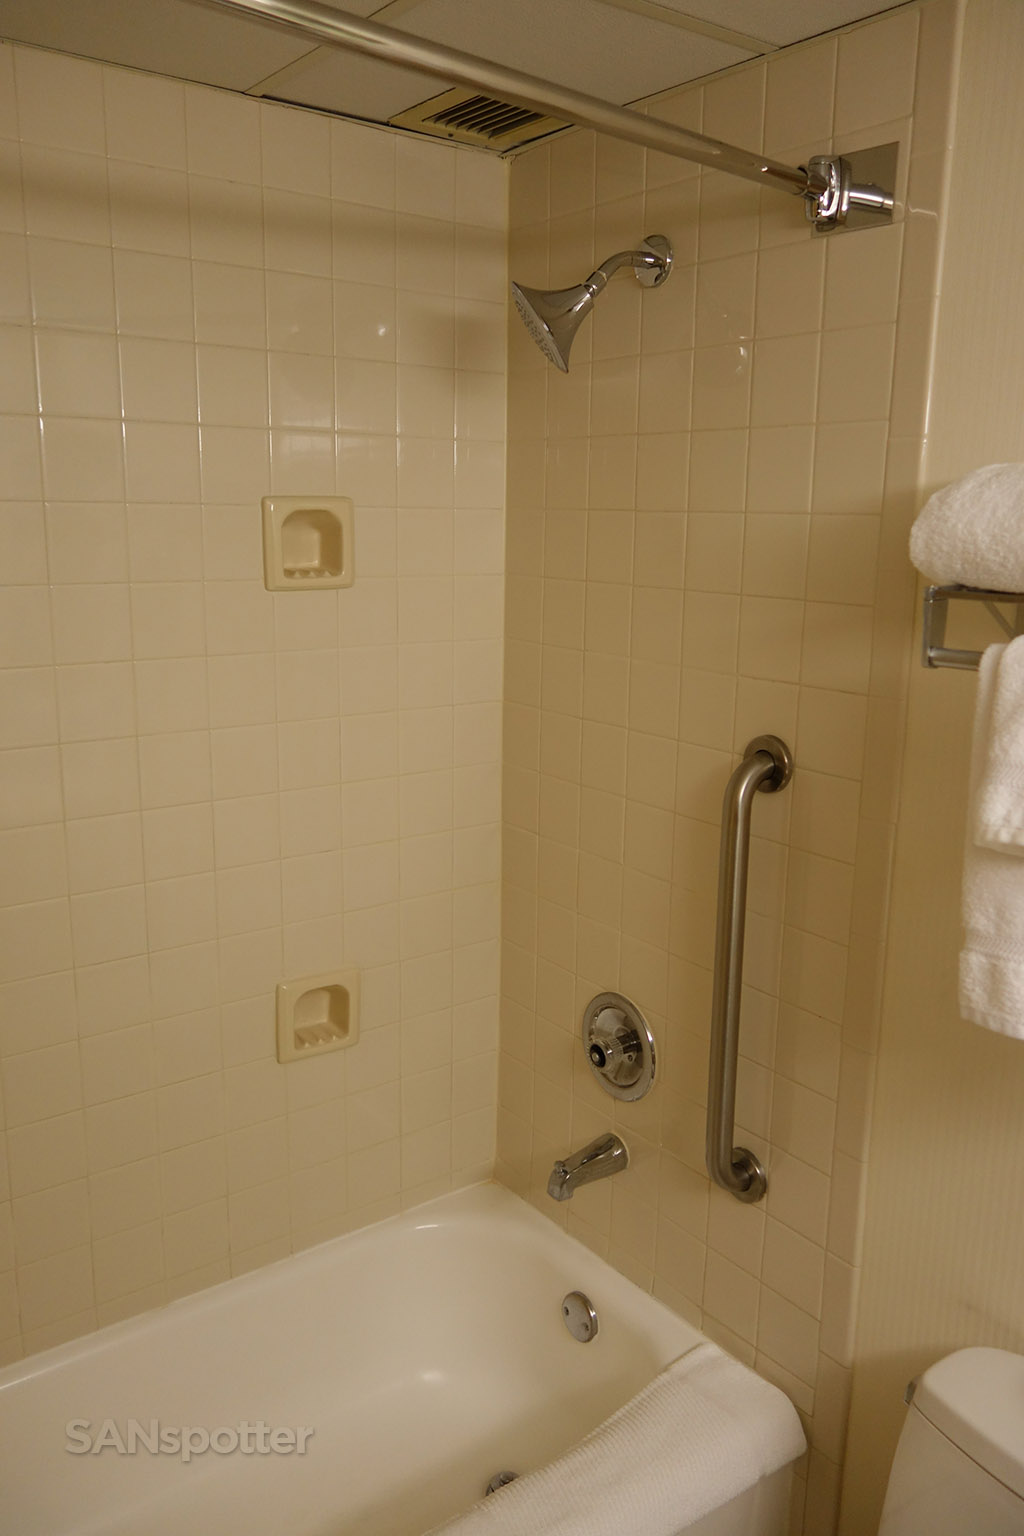 Standard-issue shower